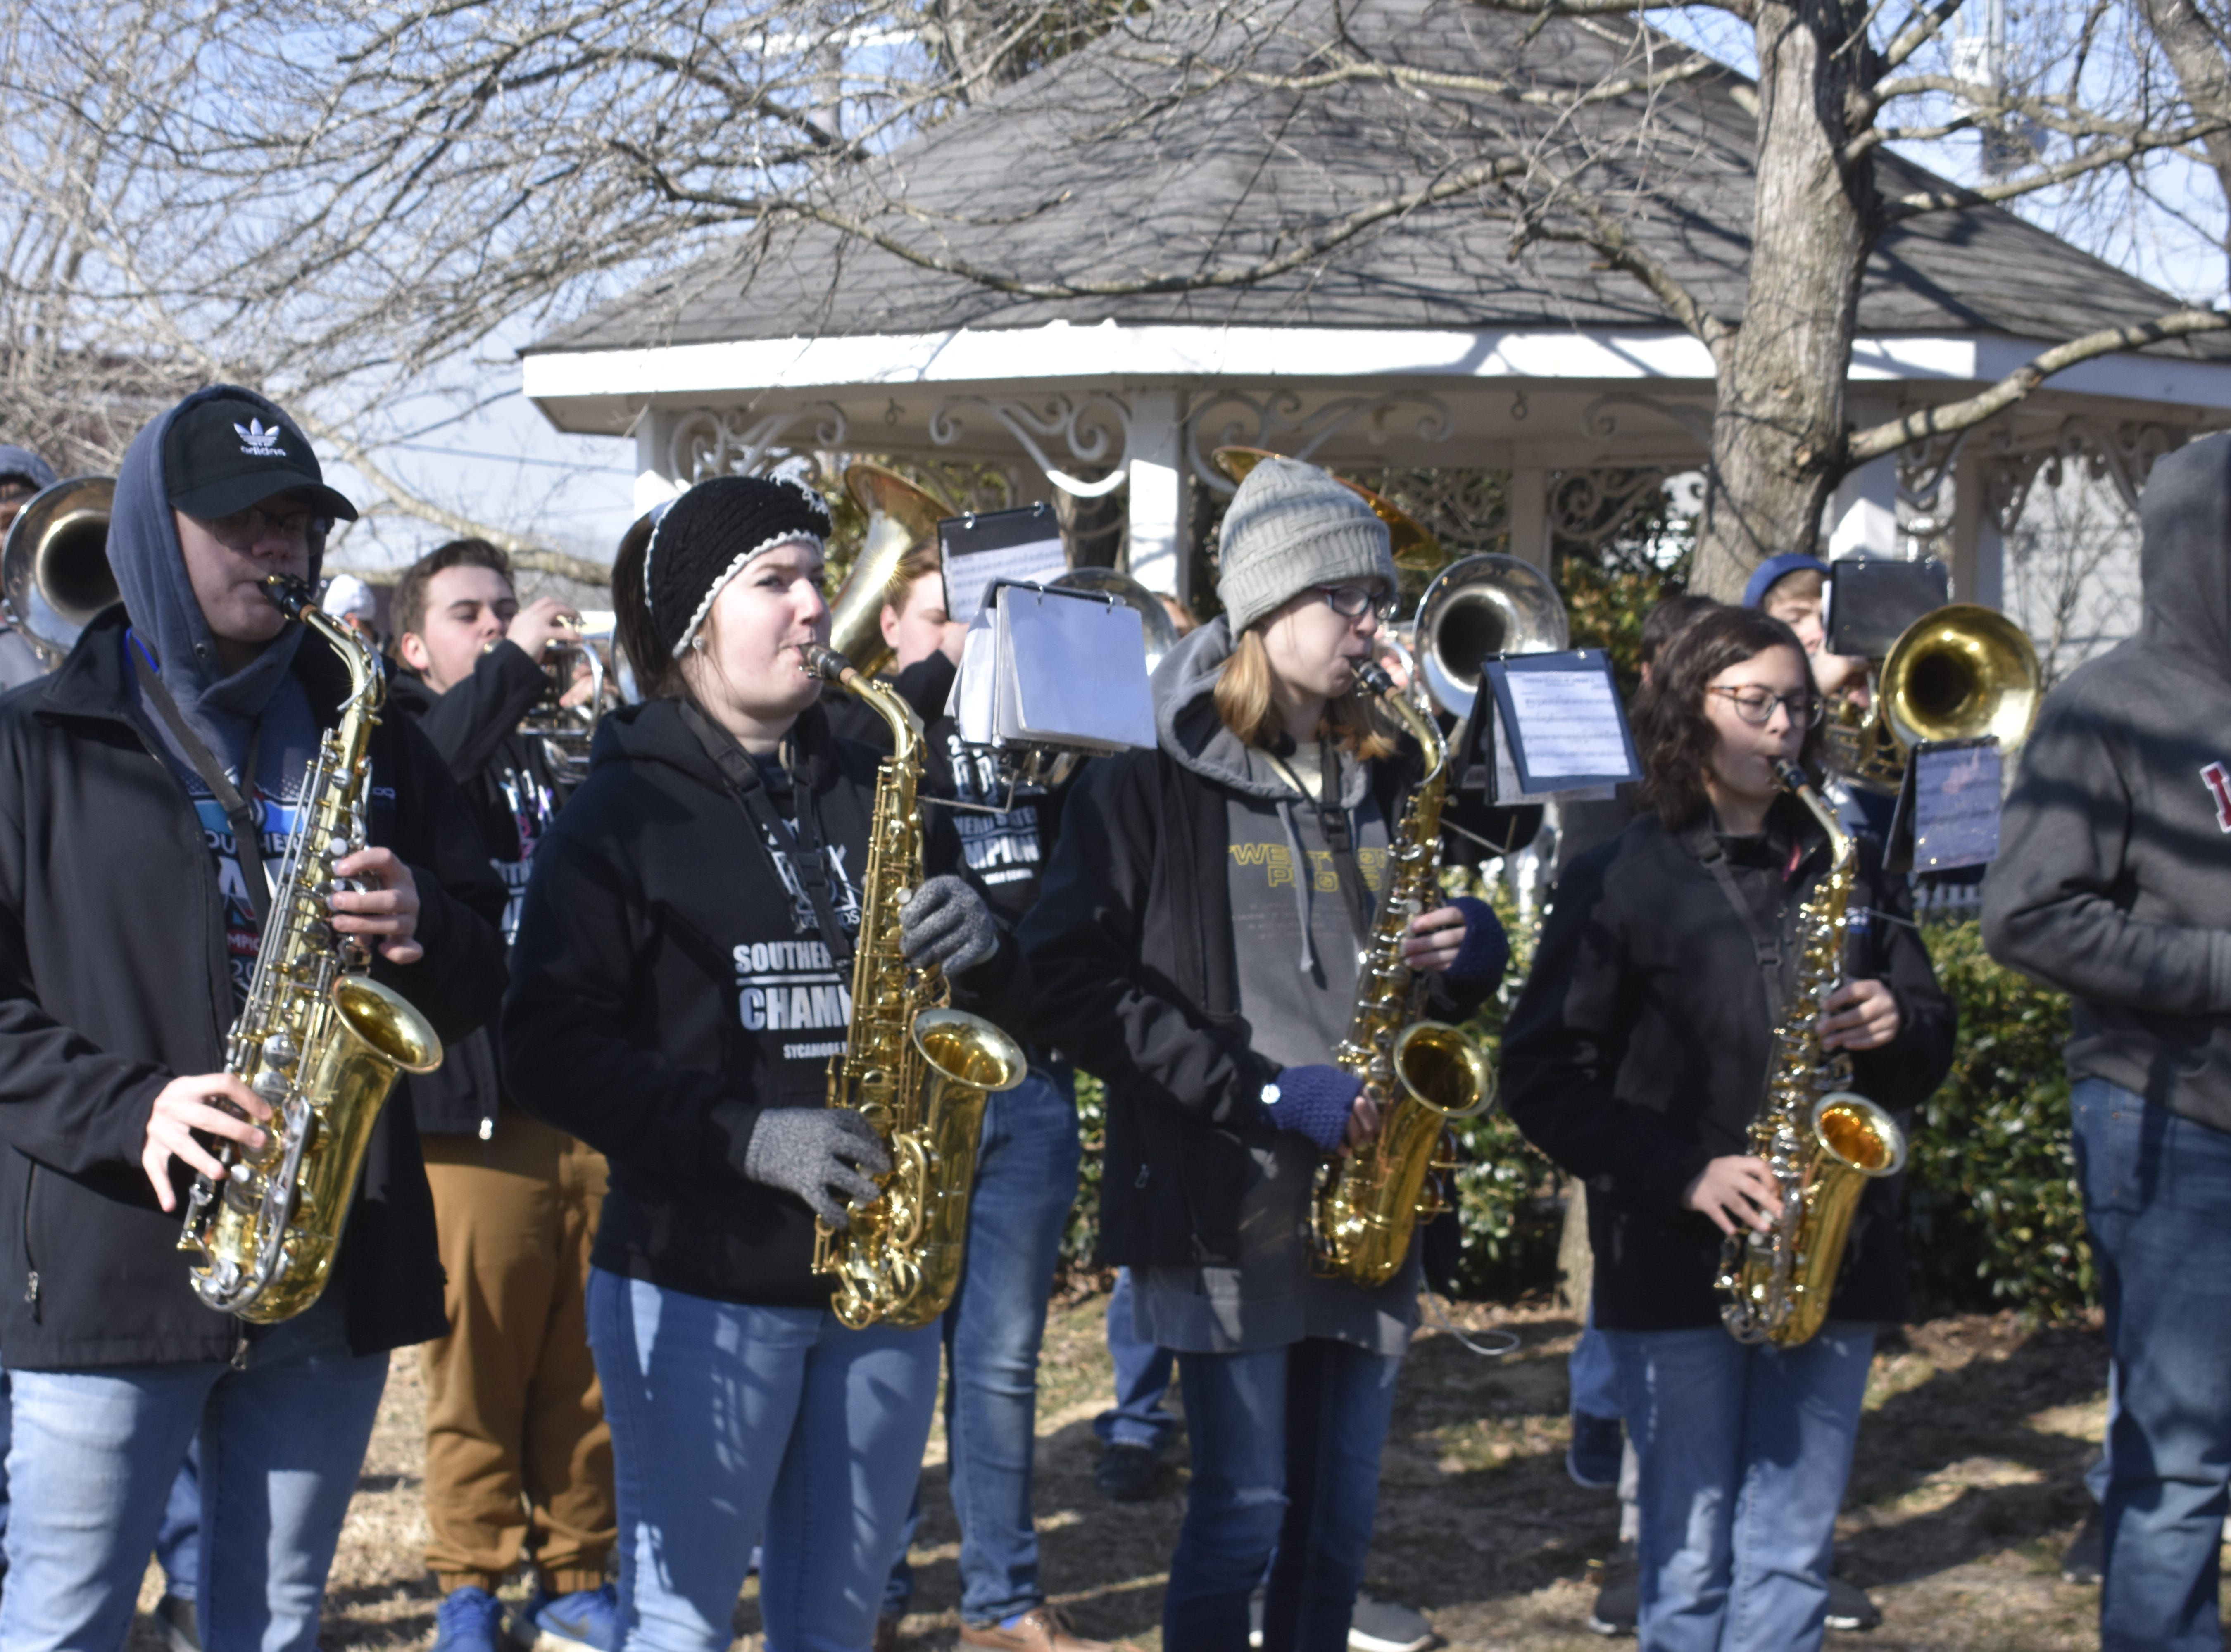 """Sycamore High School band students play at the Cheatham County Courthouse for newly-crowned International Boxing Federation Super Middleweight Champion Caleb """"Sweethands"""" Plant, who grew up in Ashland City and graduated from the school in 2010."""